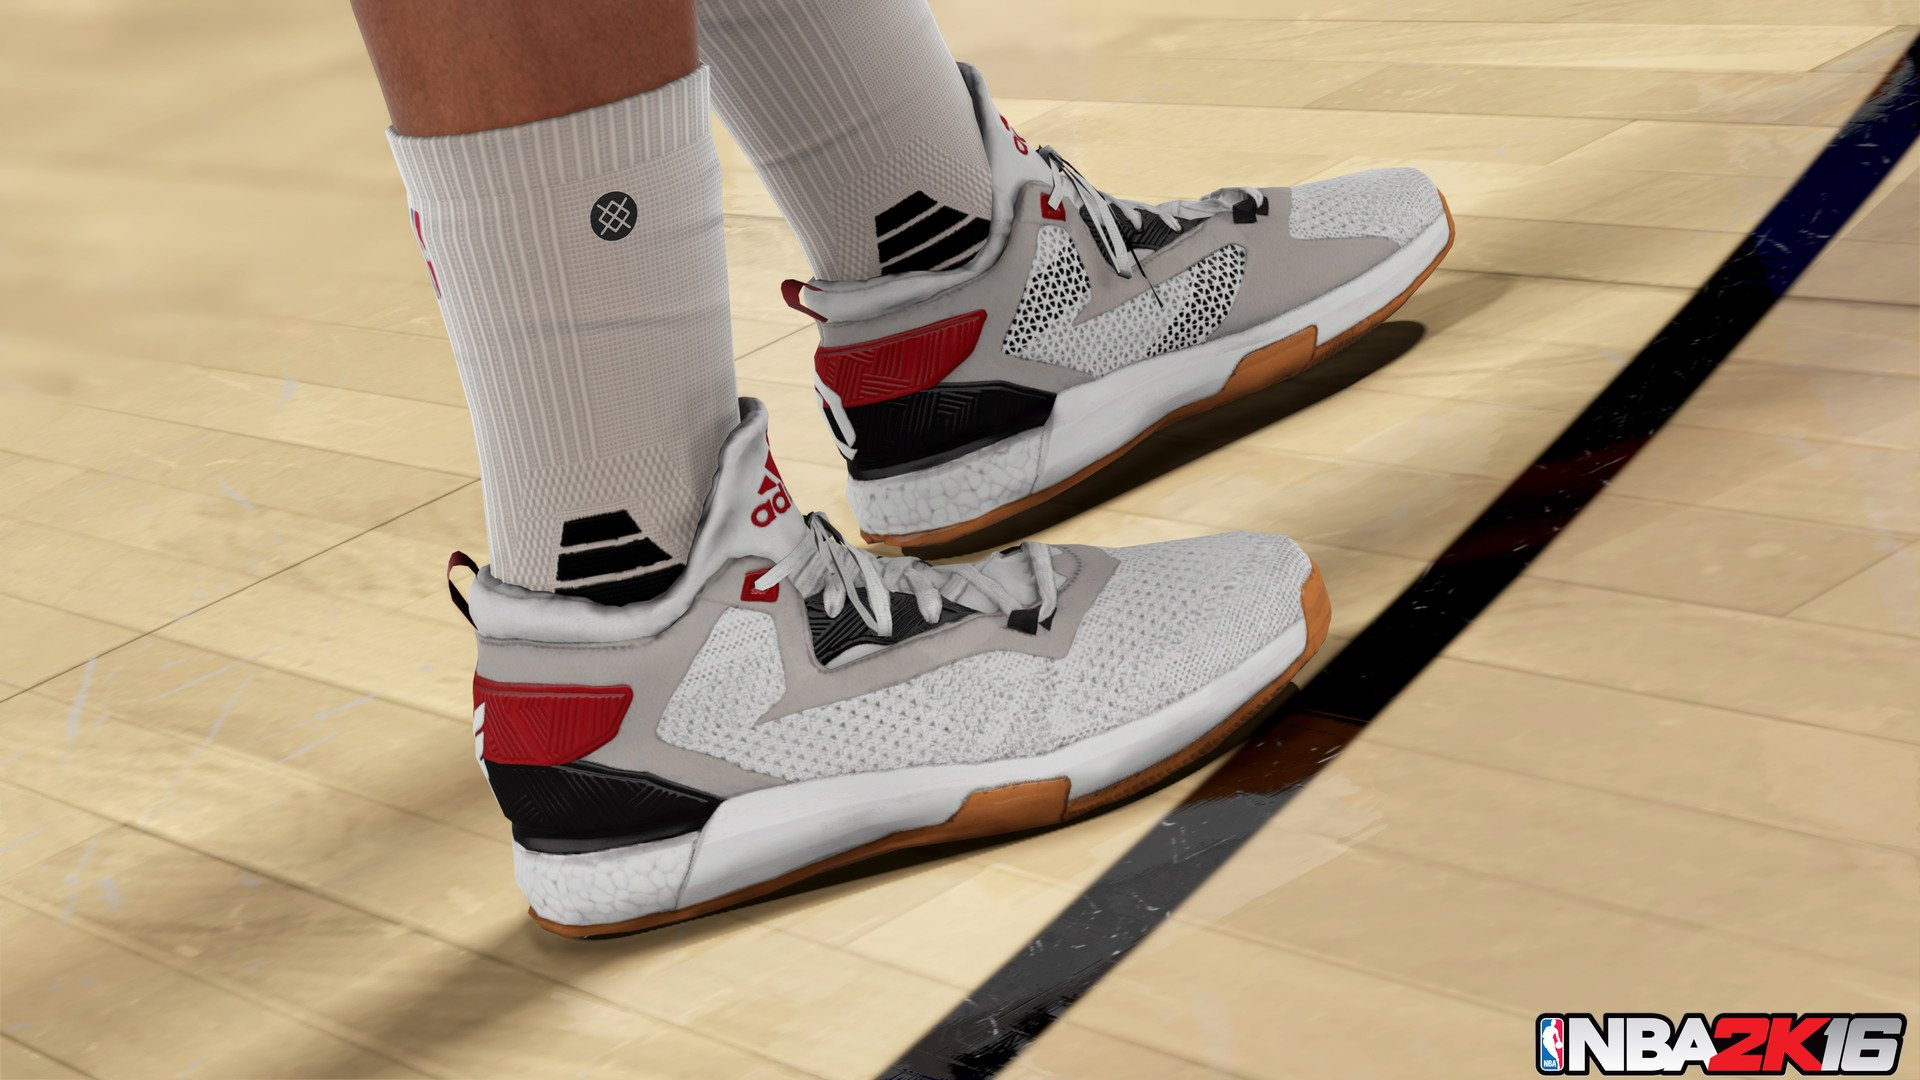 Nba 2k21 On Twitter Seven New Shoes Were Added To Nba2k16 Including The Adidas D Lillard 2 Adidas Crazy Light Boost 2 5 More Https T Co 9k8ocsizqy